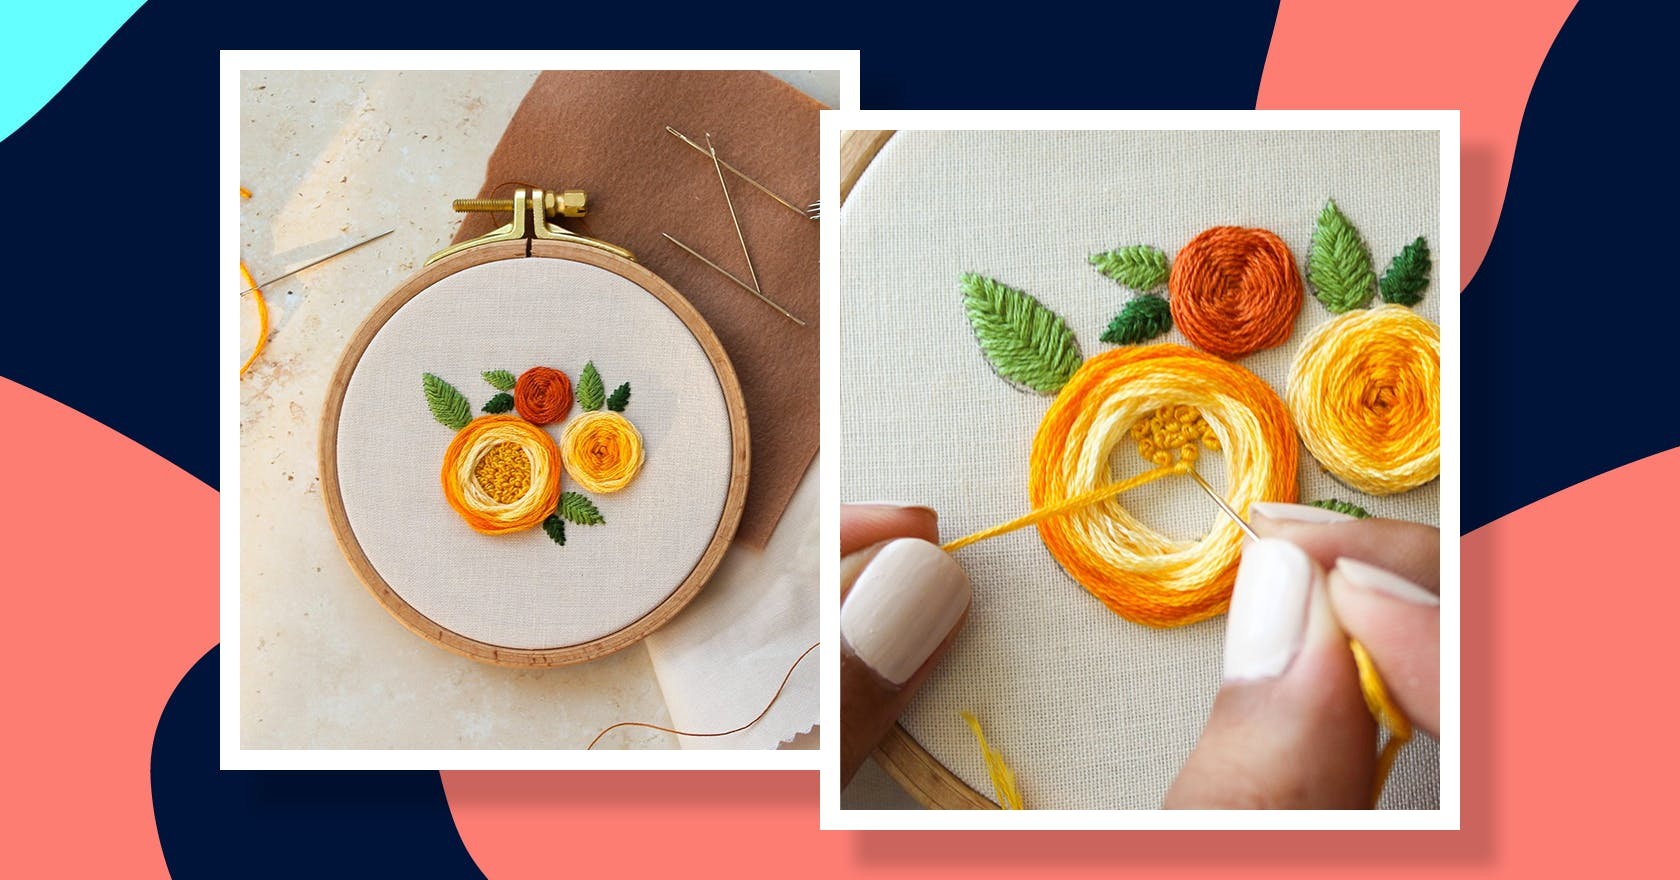 Floral embroidery design to try at home with tips from an expert